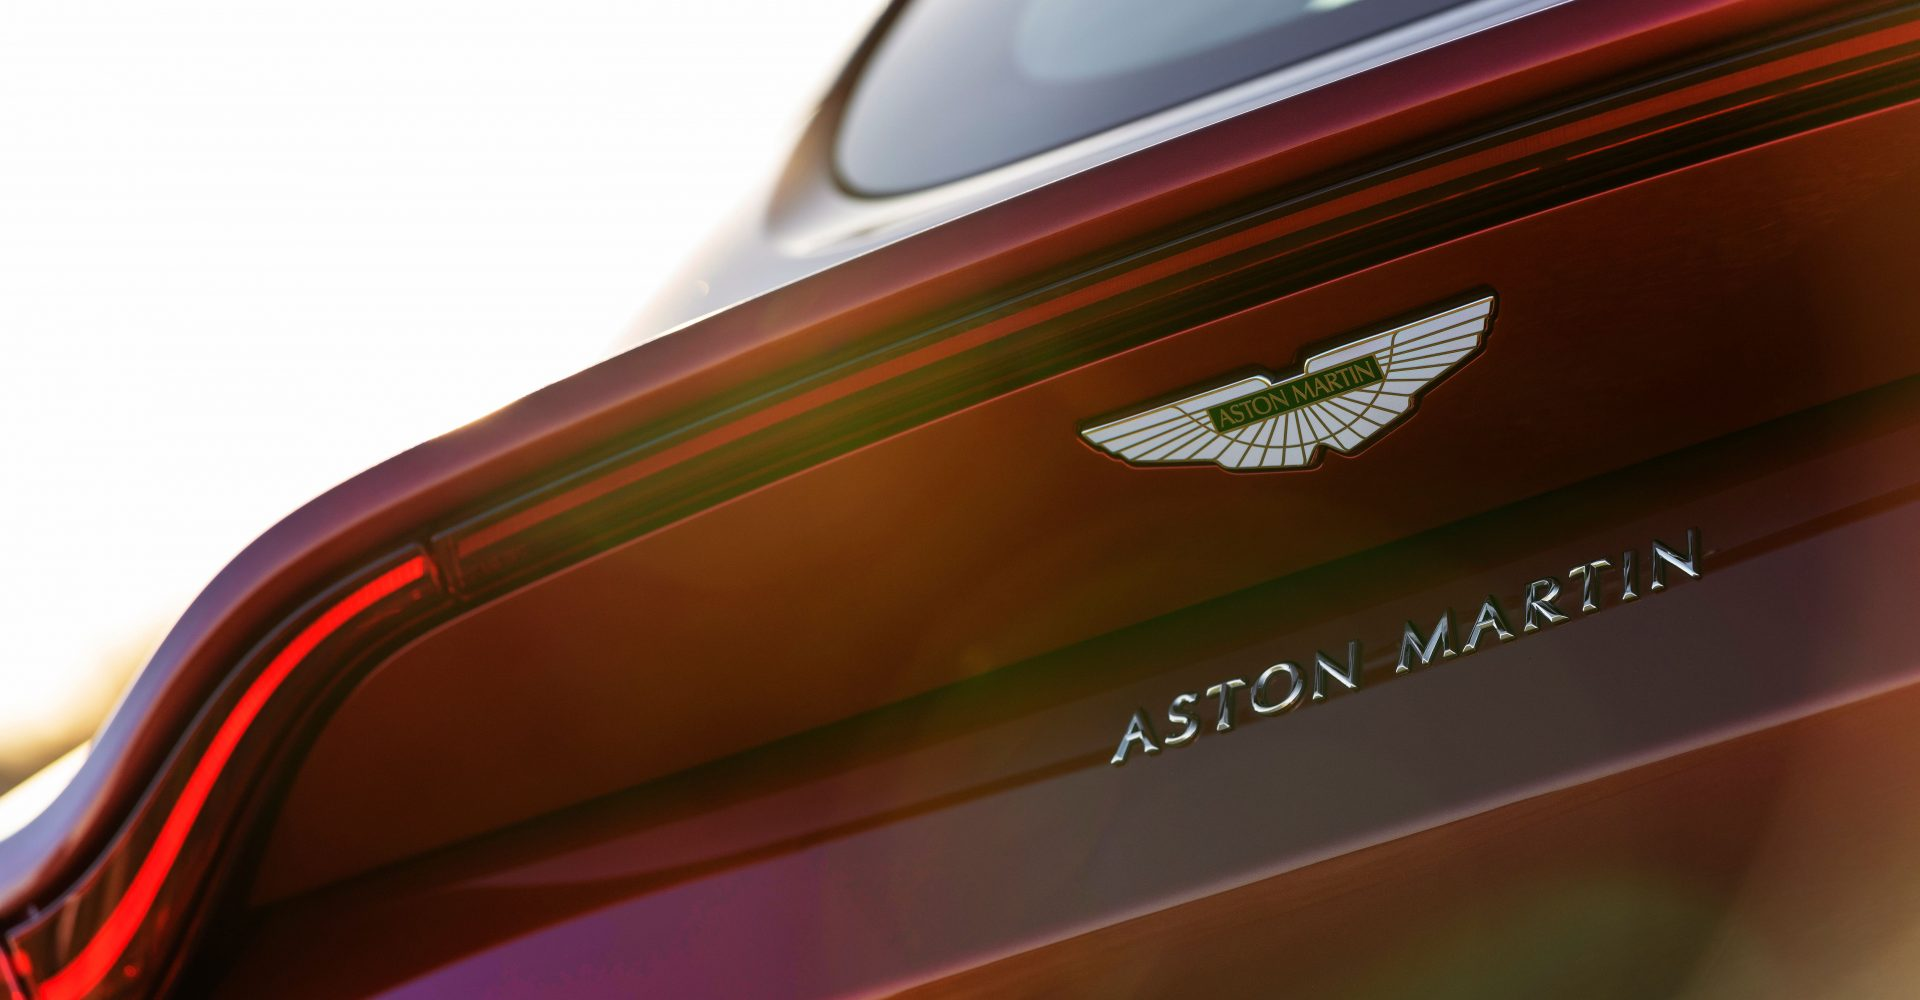 Mercedes-Benz increases stake in Aston Martin with expanded tech agreement